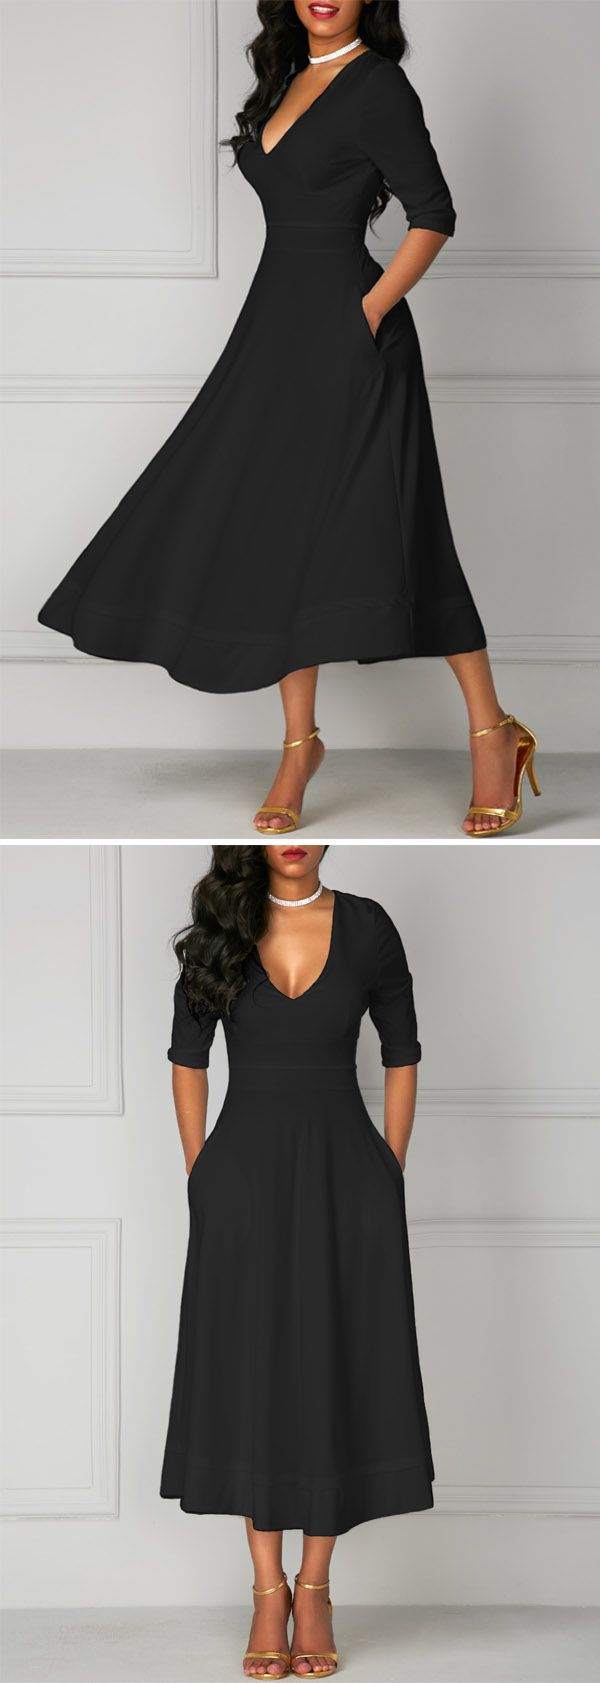 Pin By Sherrie Derby On Must Have In My Closet Dresses Fashion Half Sleeve Dresses [ 1683 x 600 Pixel ]